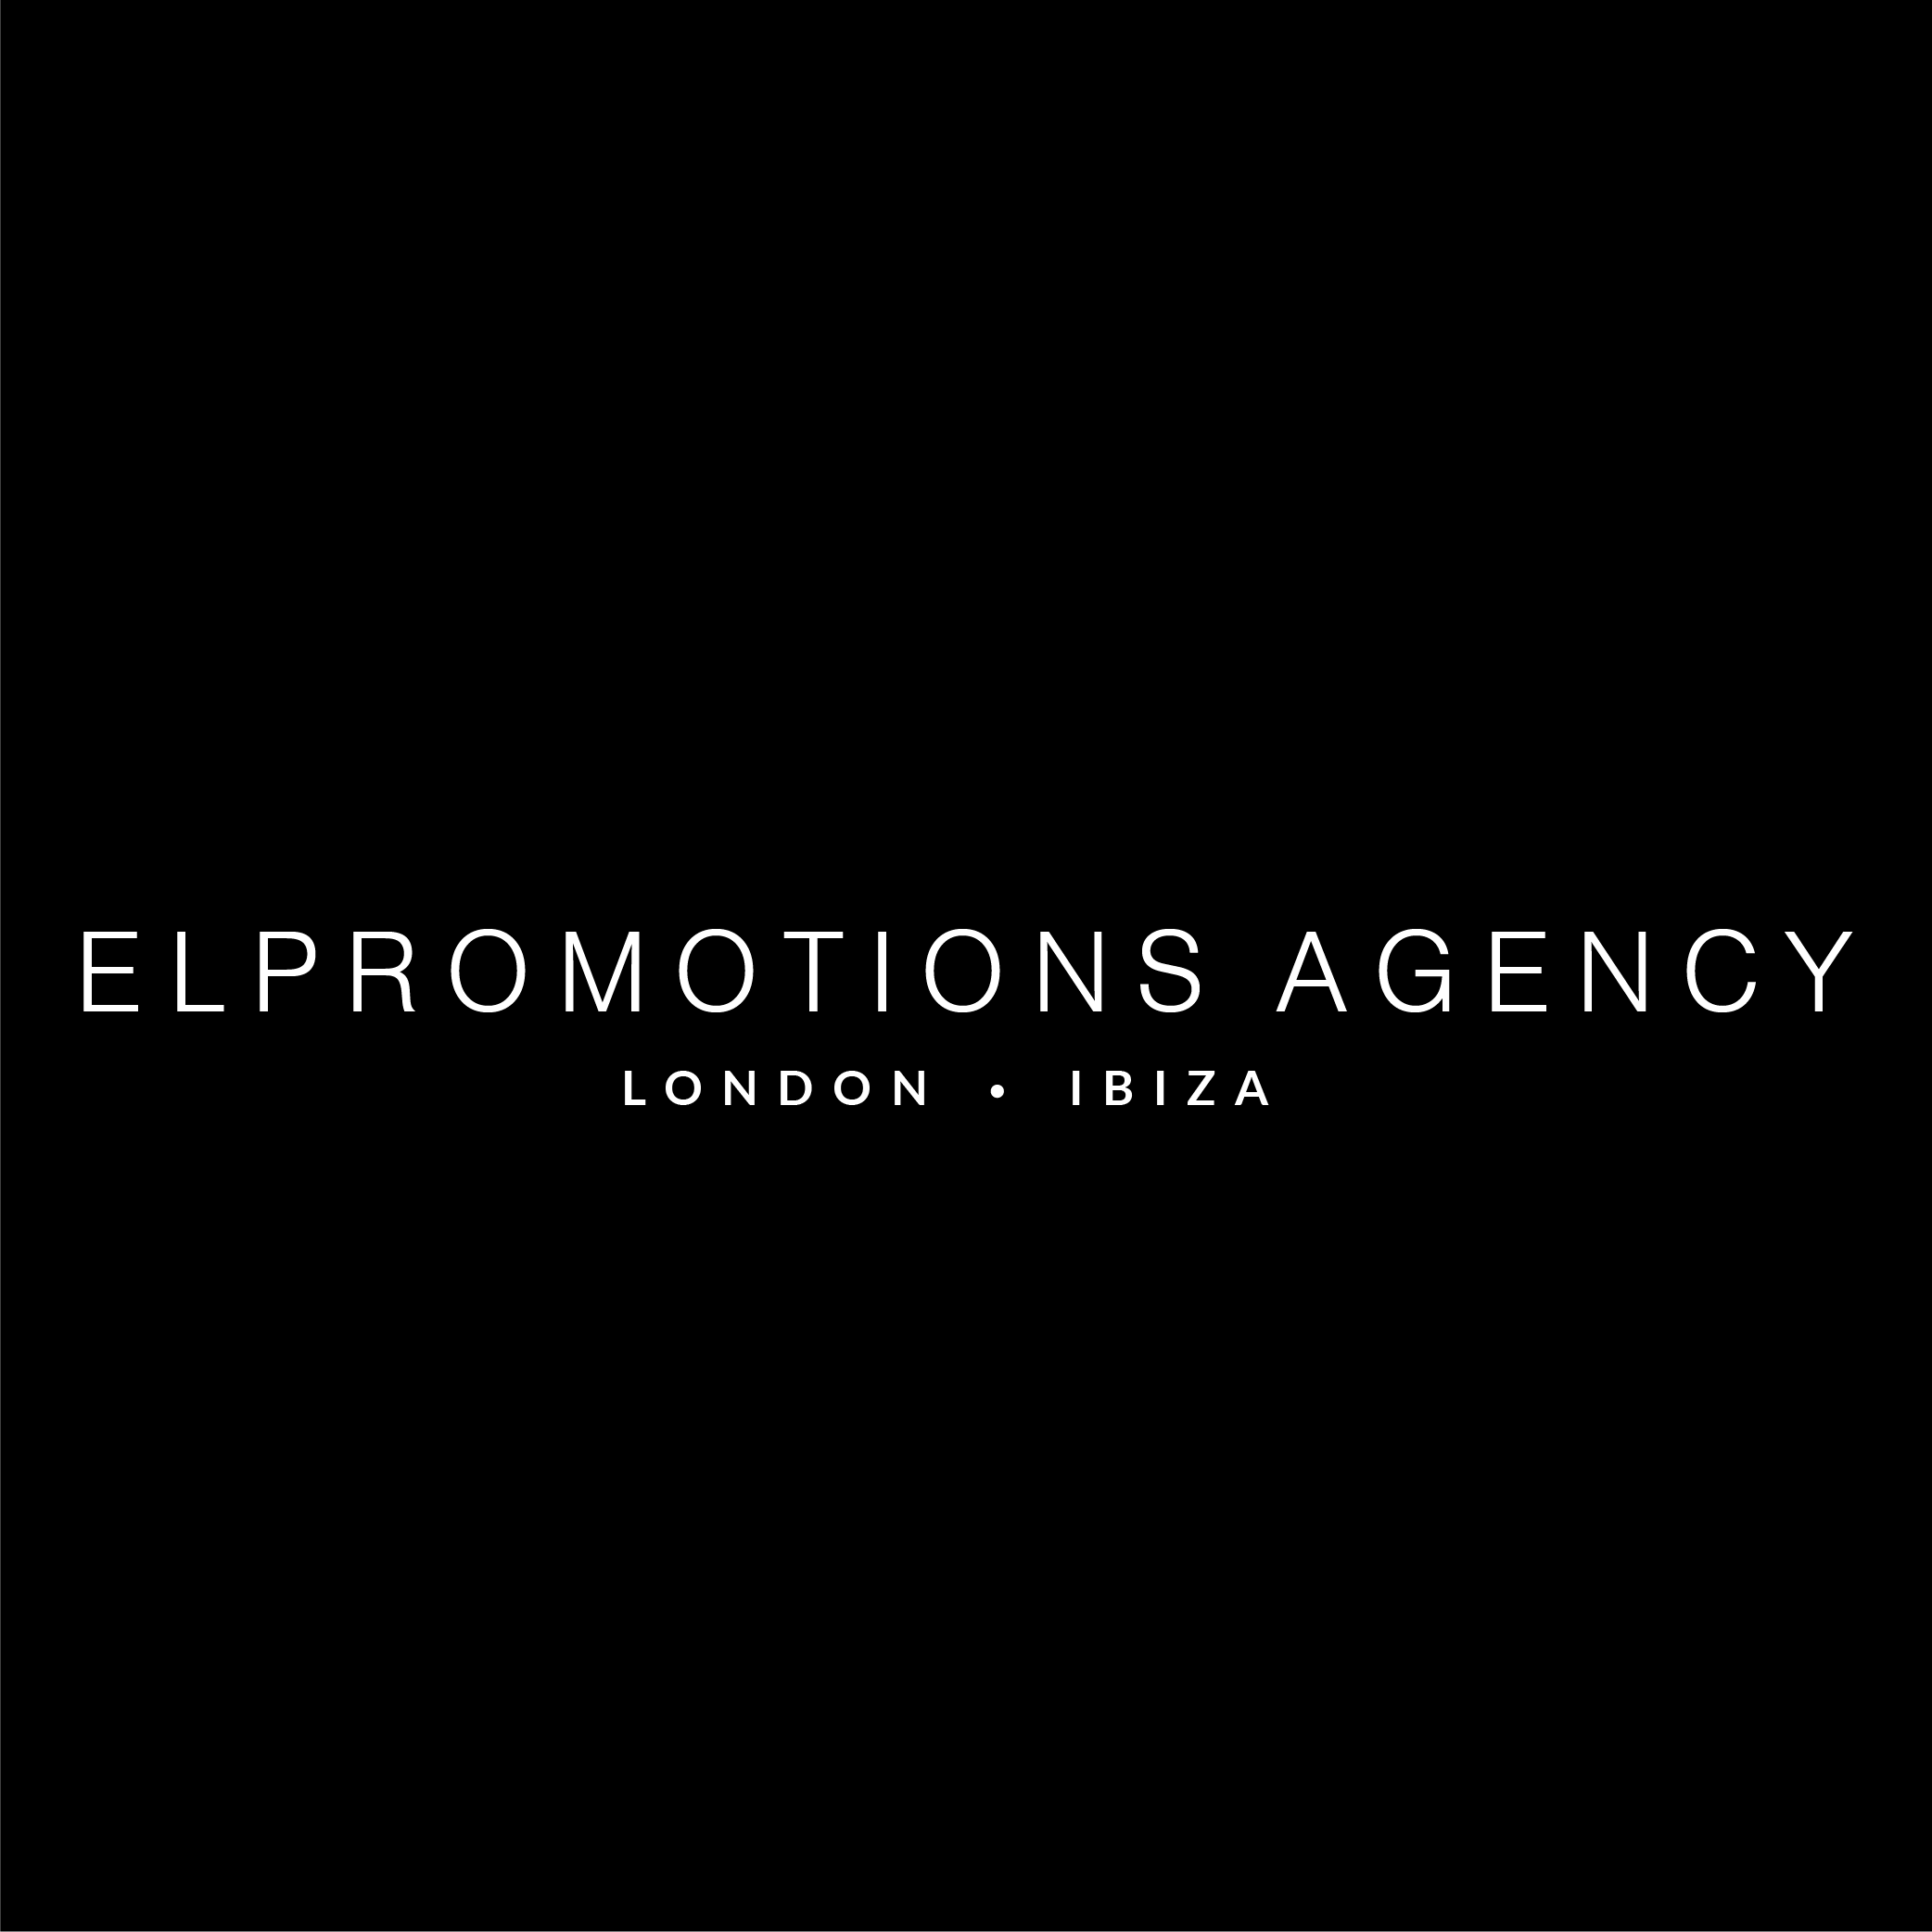 Announcing Elpromotions Agency rebrand!